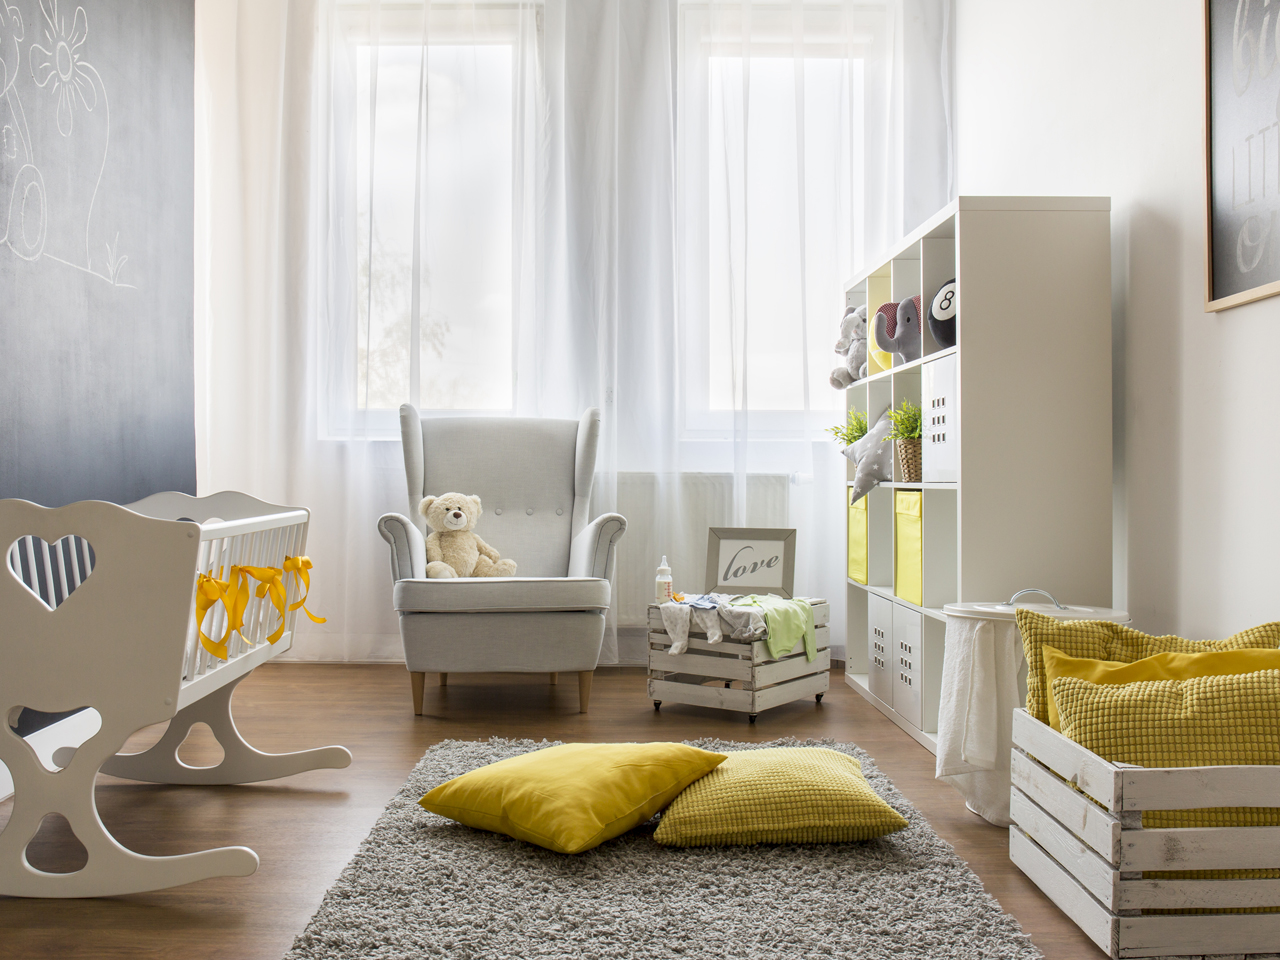 wood_material_kid's_room_furniture